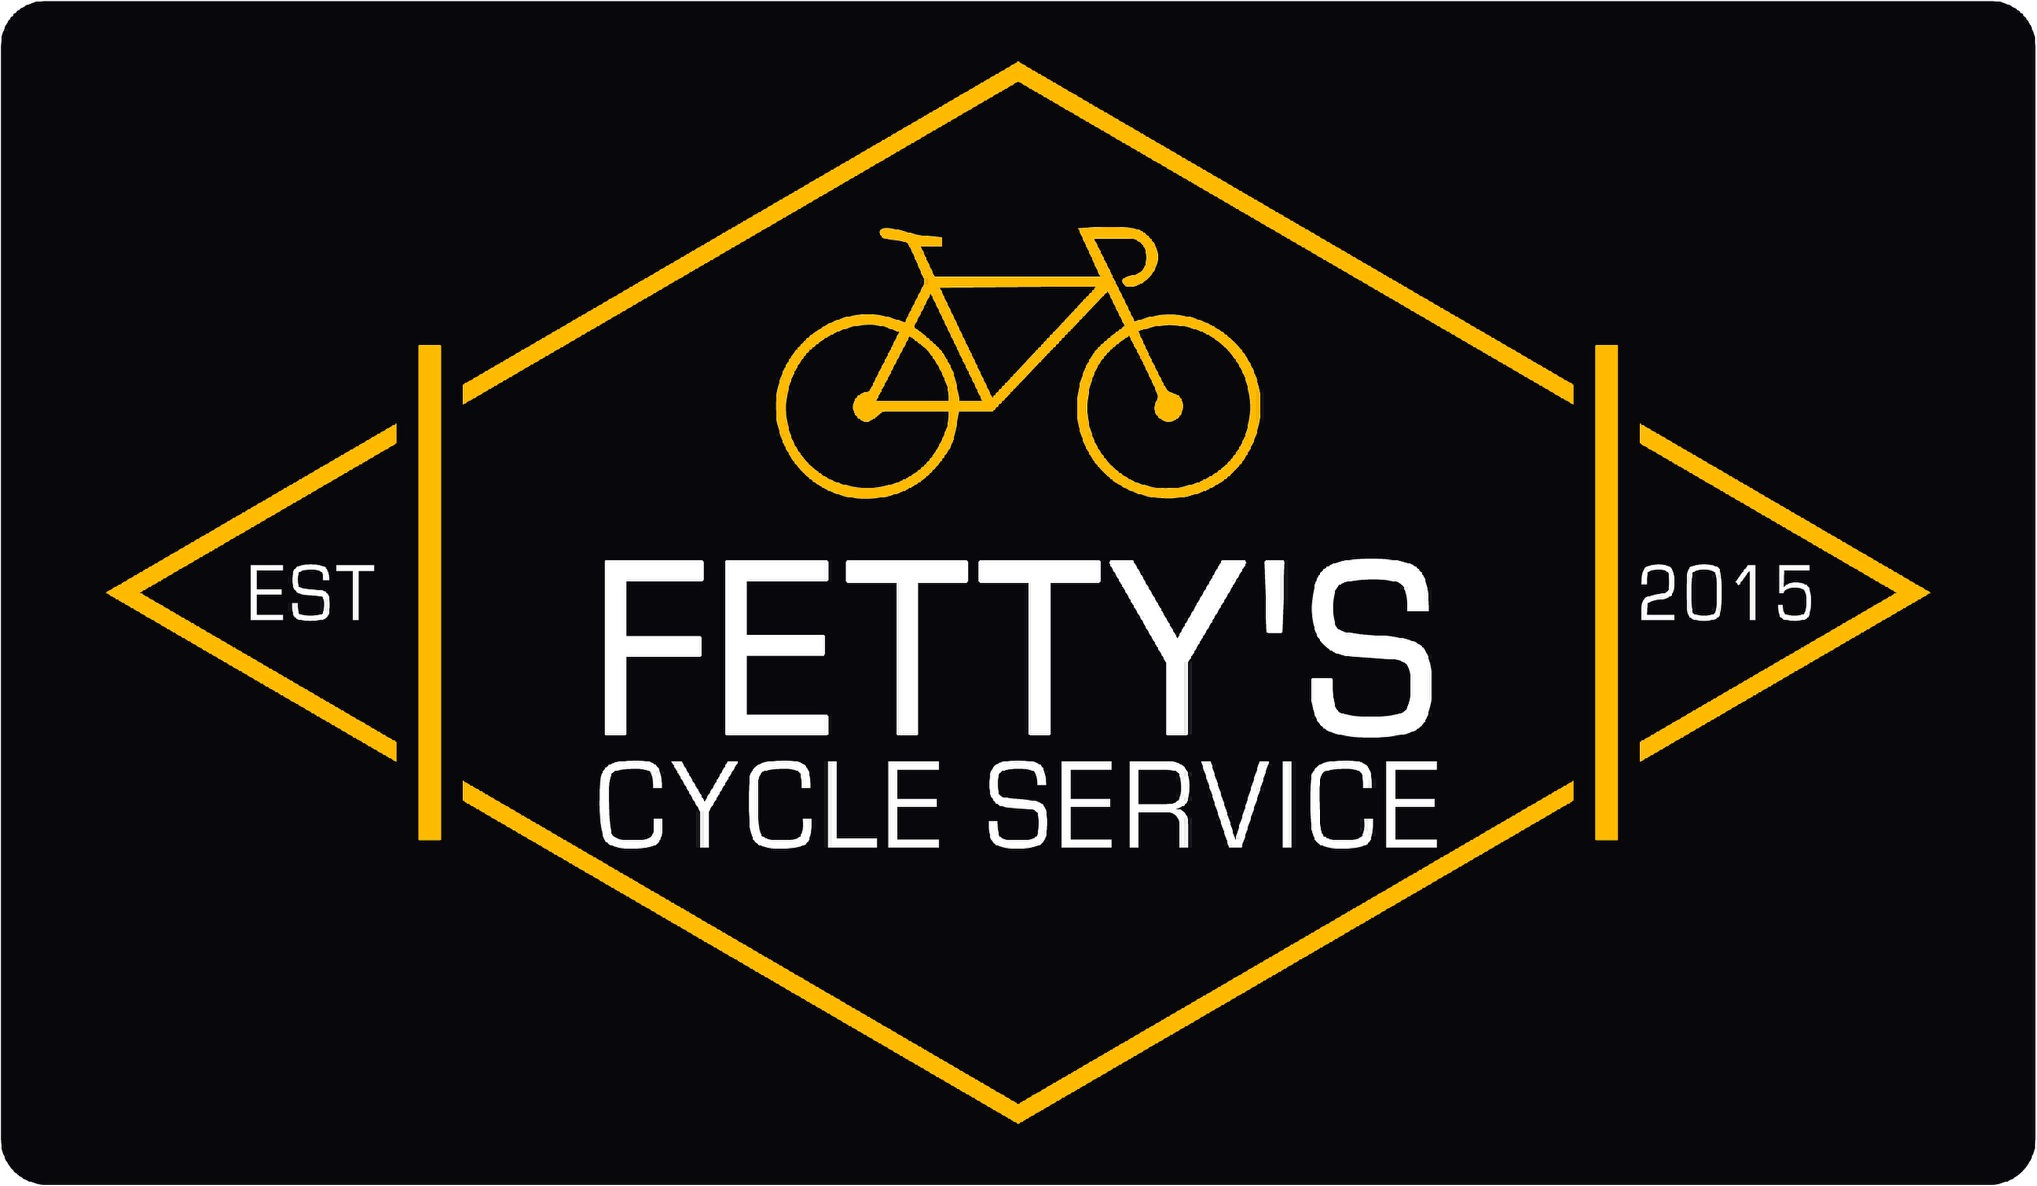 Fetty's Cycle Service